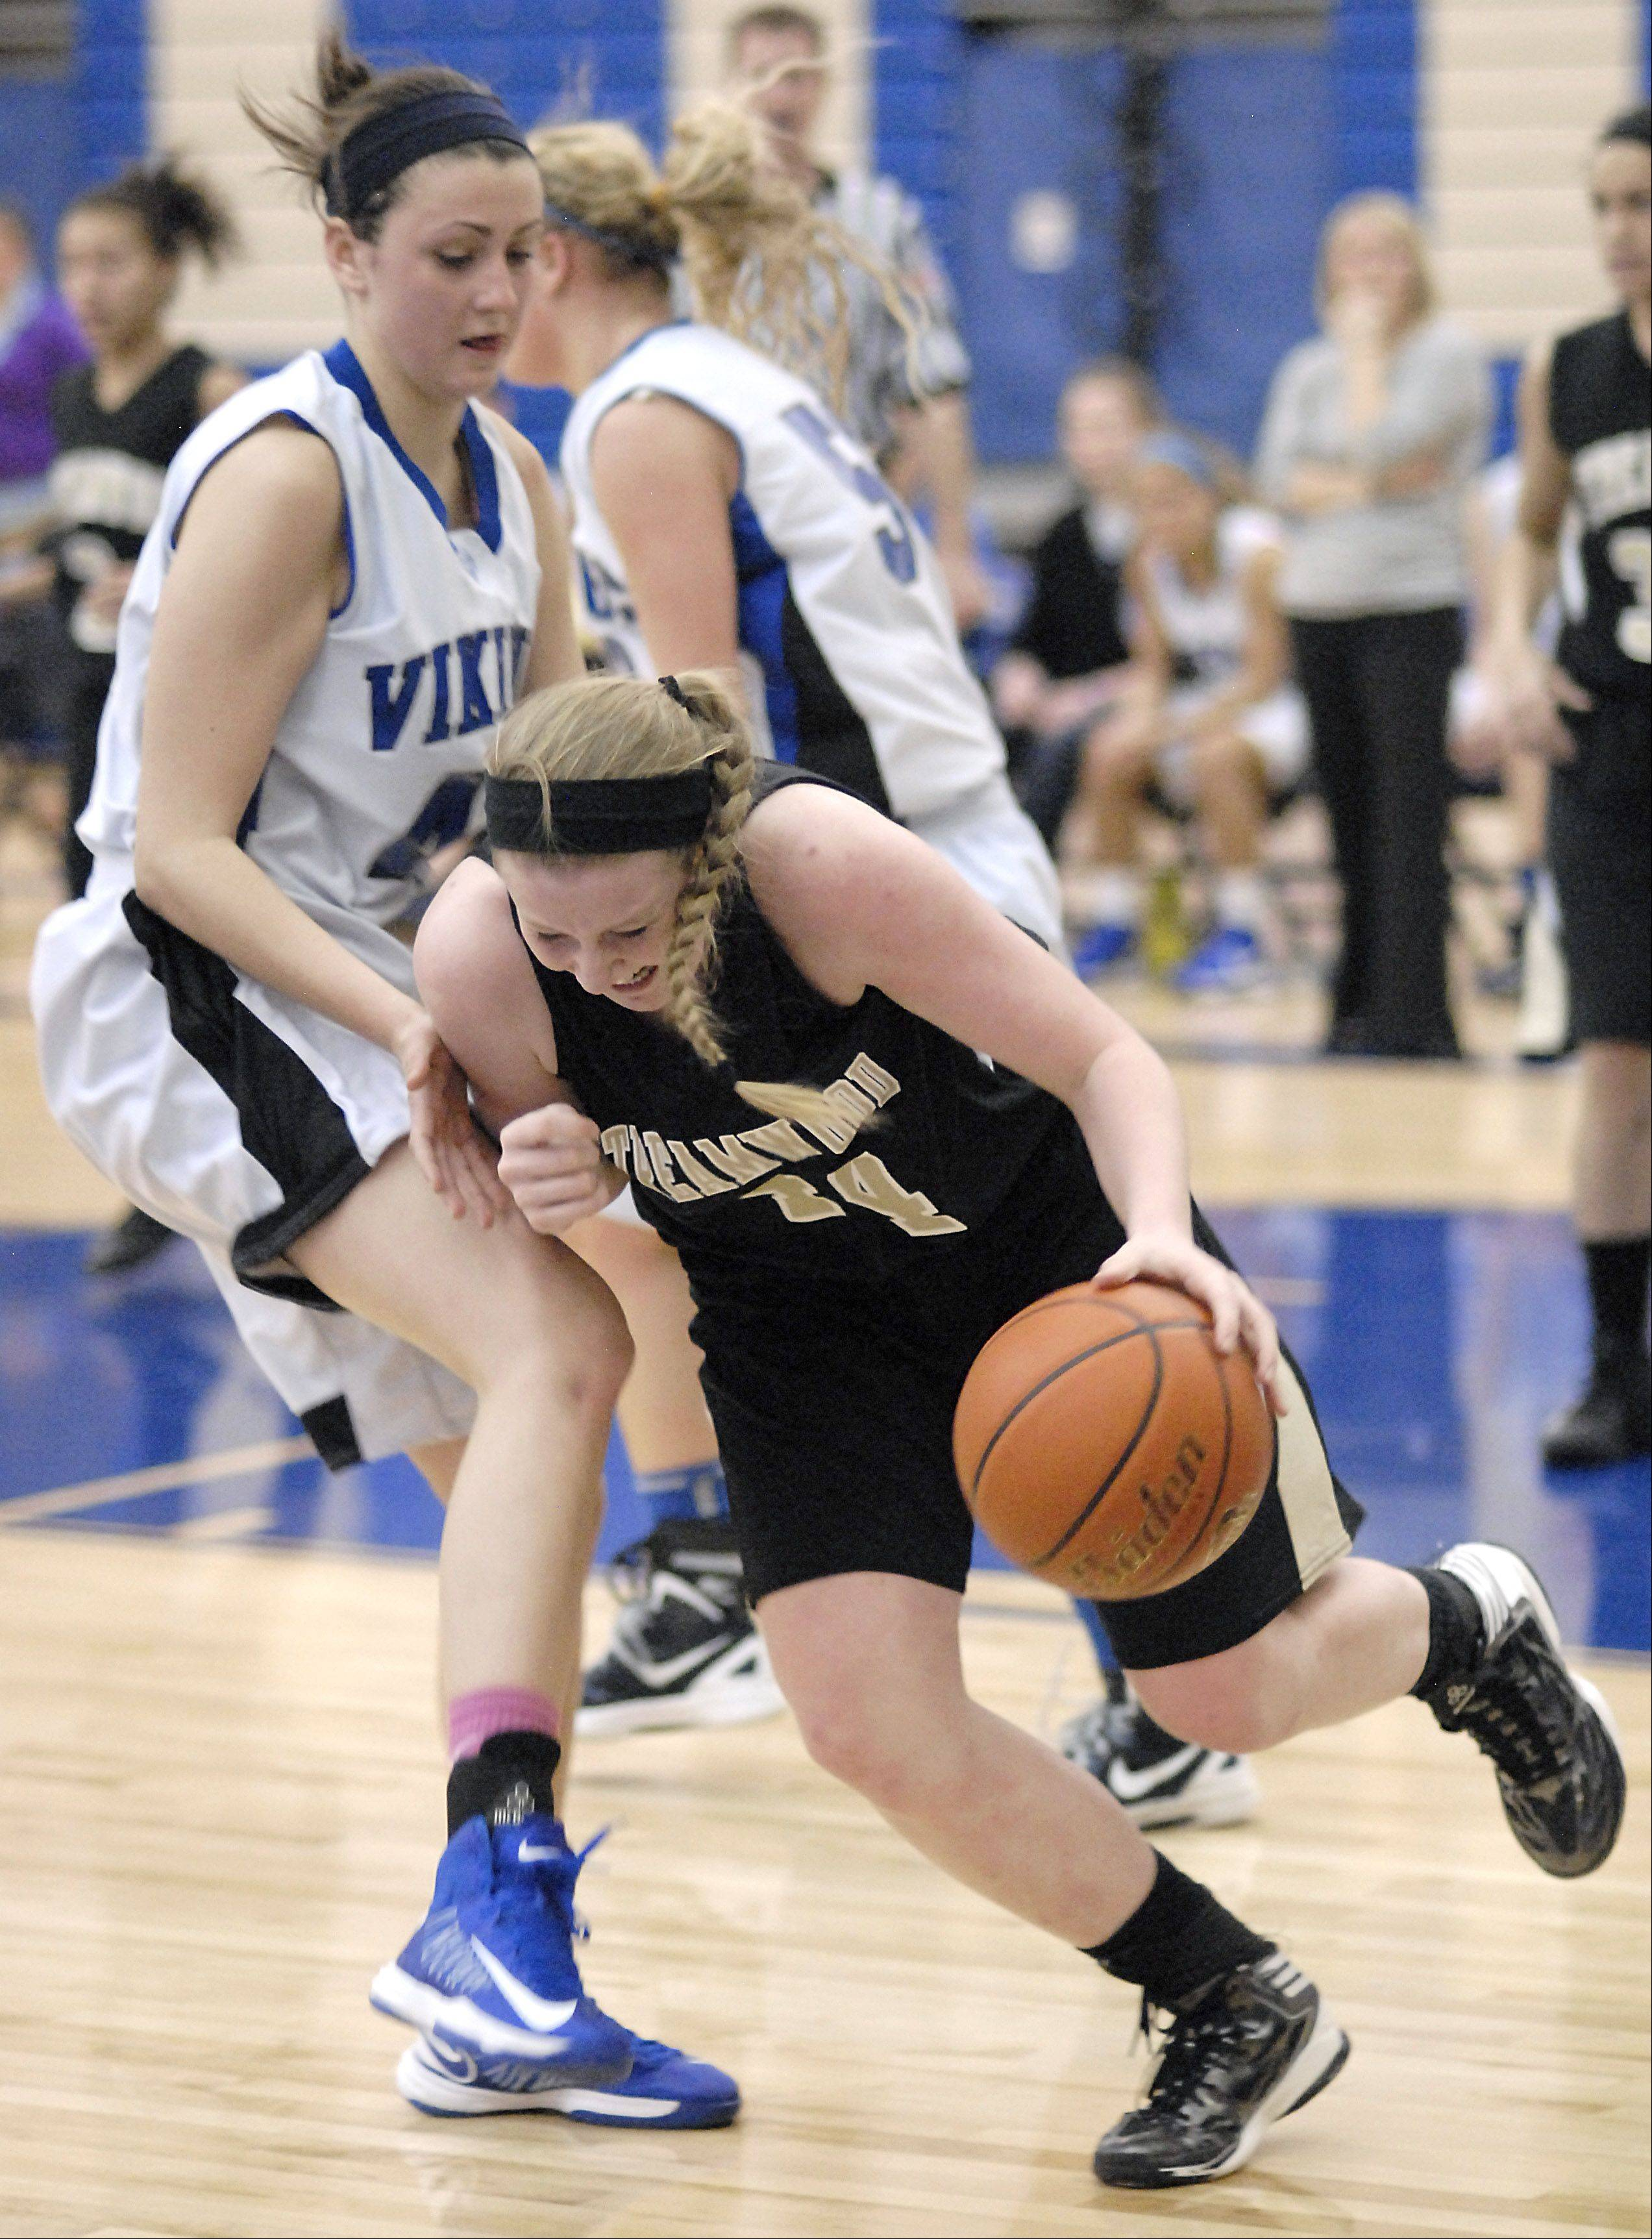 Streamwood's Hannah McGlone pushes her way past Geneva's Abby Novak after grabbing a Vikings rebound in the fourth quarter on Wednesday, December 12.